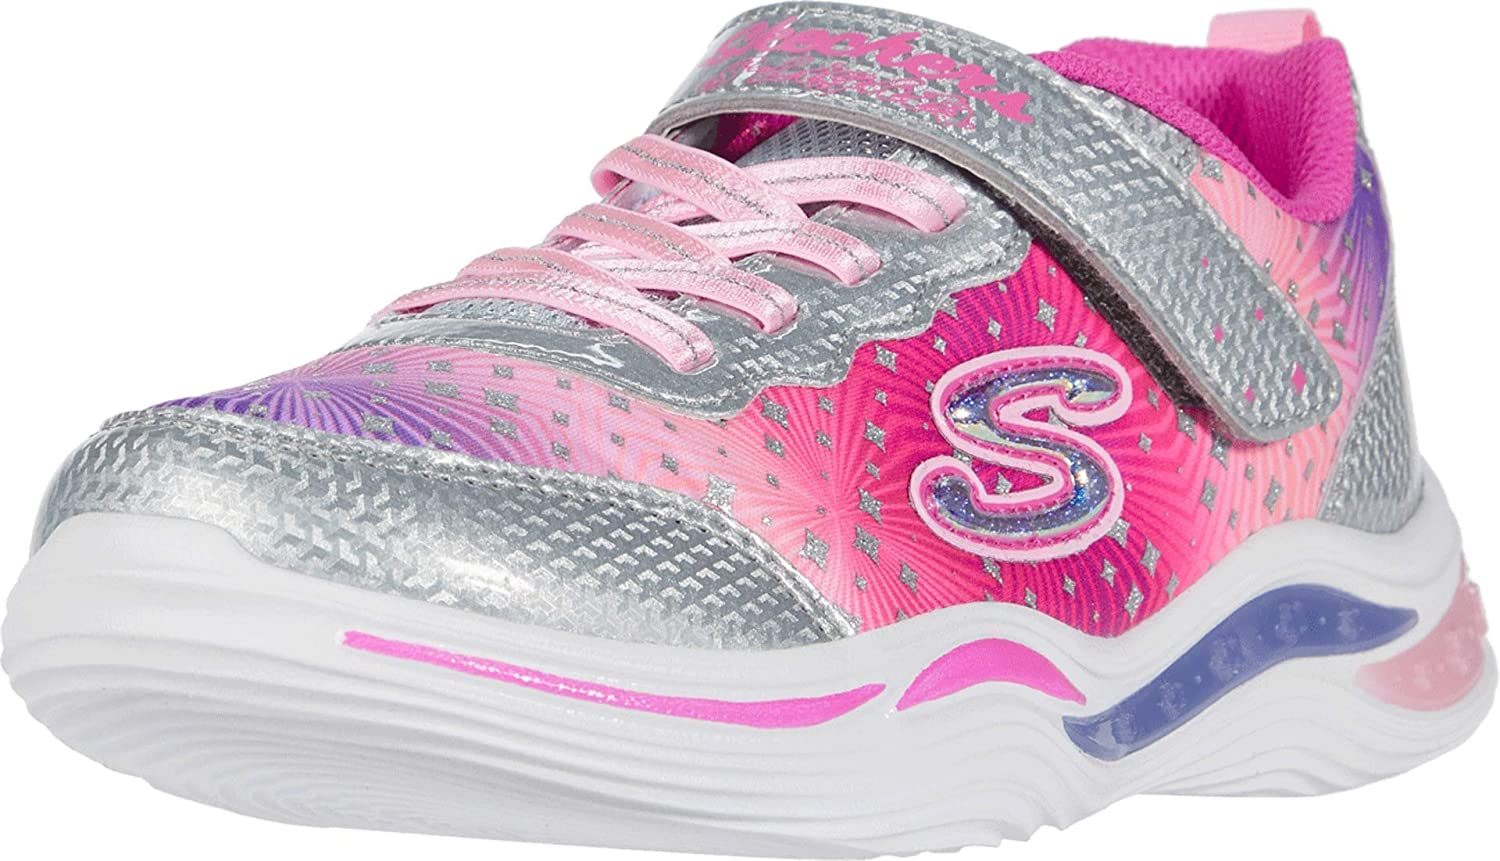 Skechers Ranking integrated 1st place Unisex-Child Power Sneaker Max 41% OFF Daisy Petals-Painted